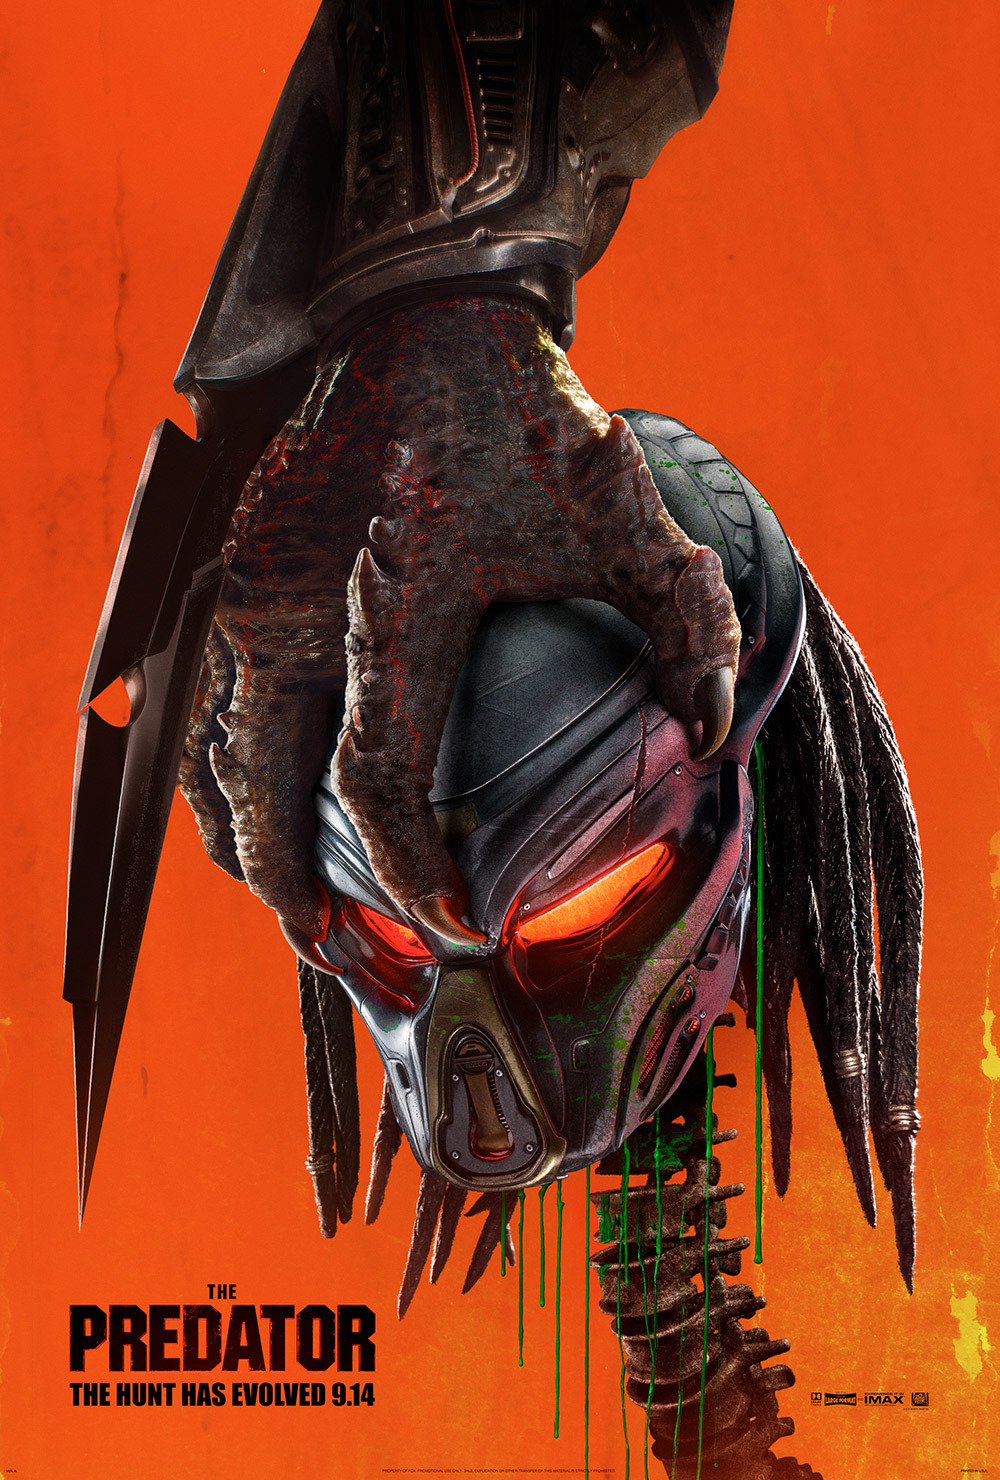 Image result for the predator movie poster 2018 official